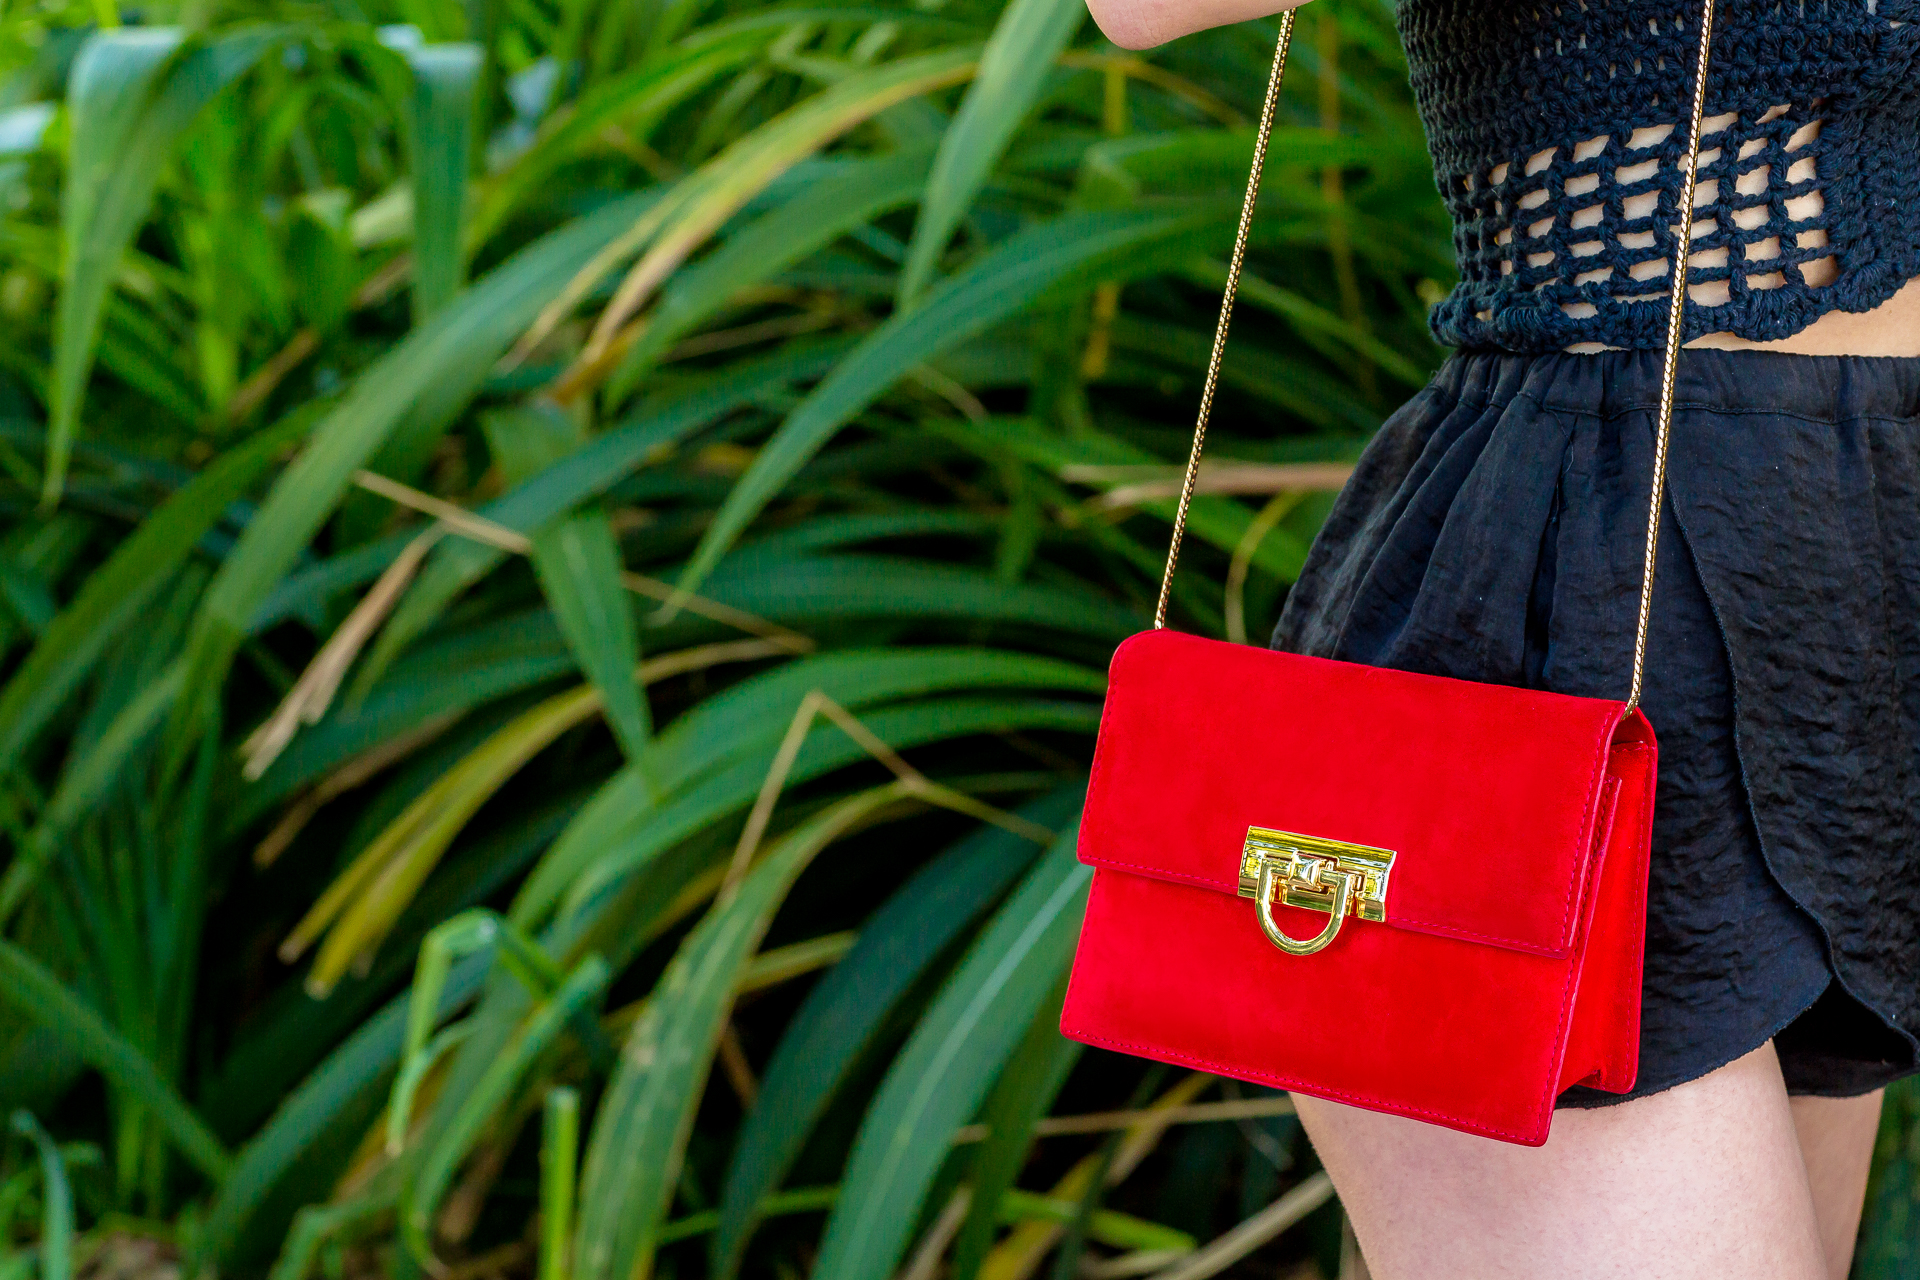 Red Purse DavidTruuu 08 Festival Lookbook 2/3: Crochet Tops